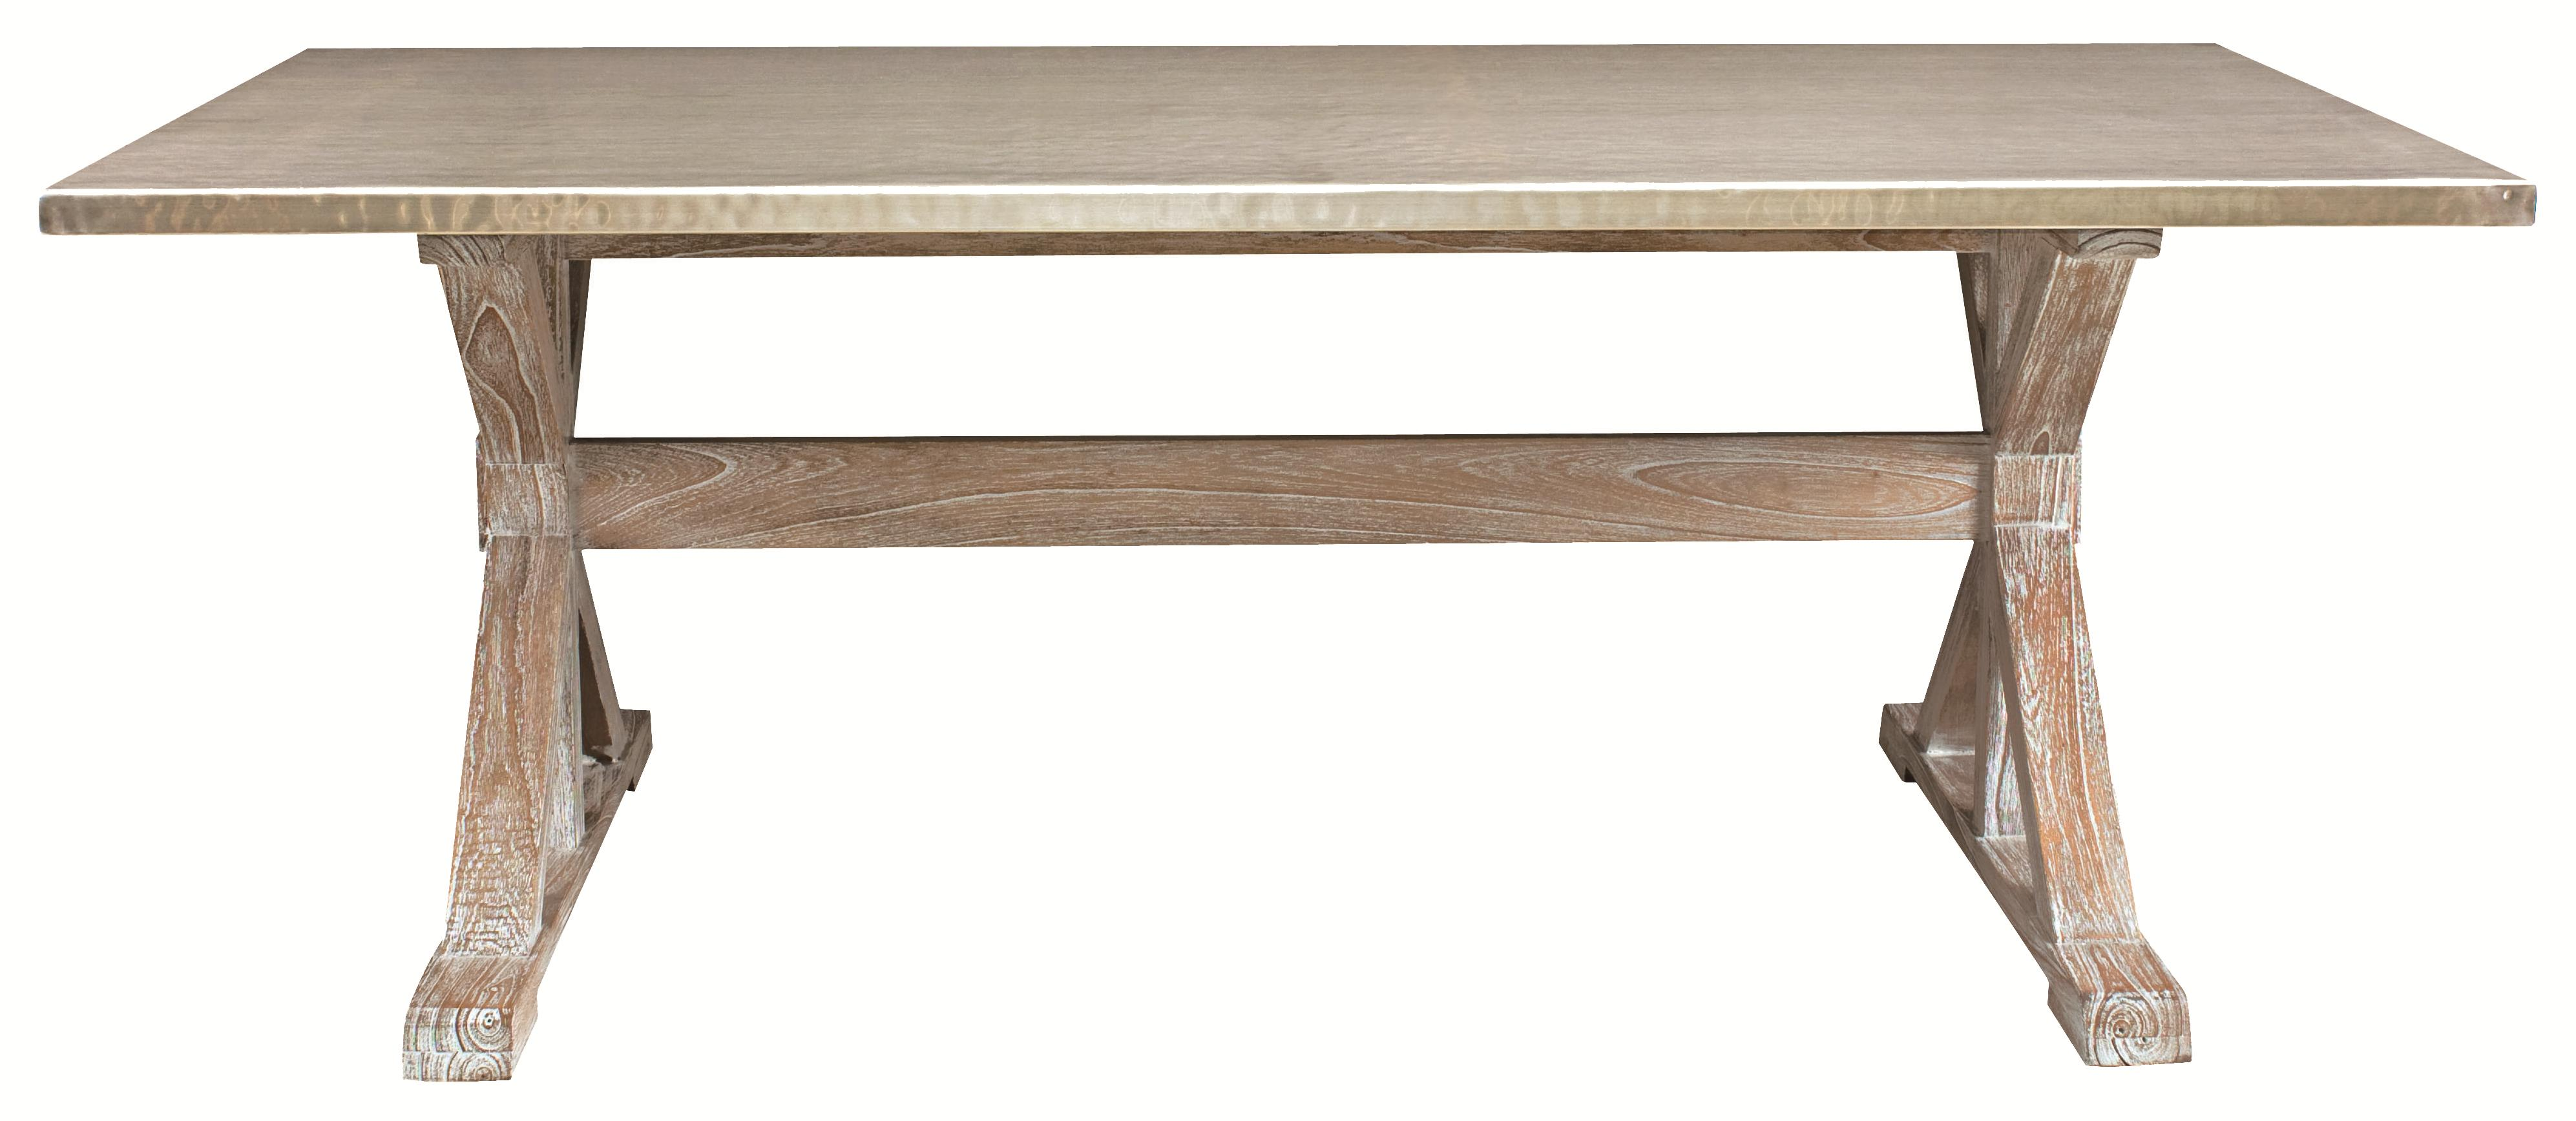 Bernhardt quentin modern dining table with antique look for Looking for dining table